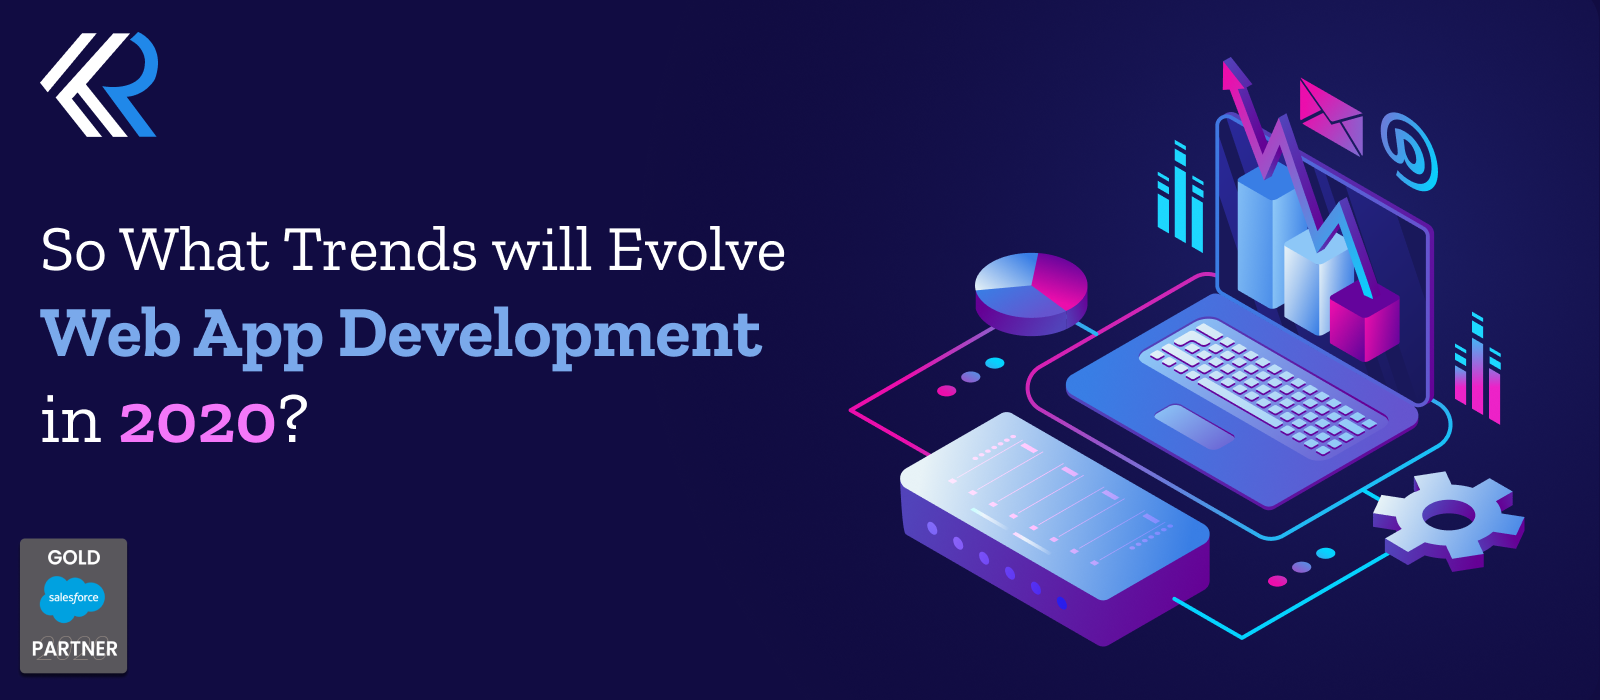 What trends will evolve in Web App Development in 2020?